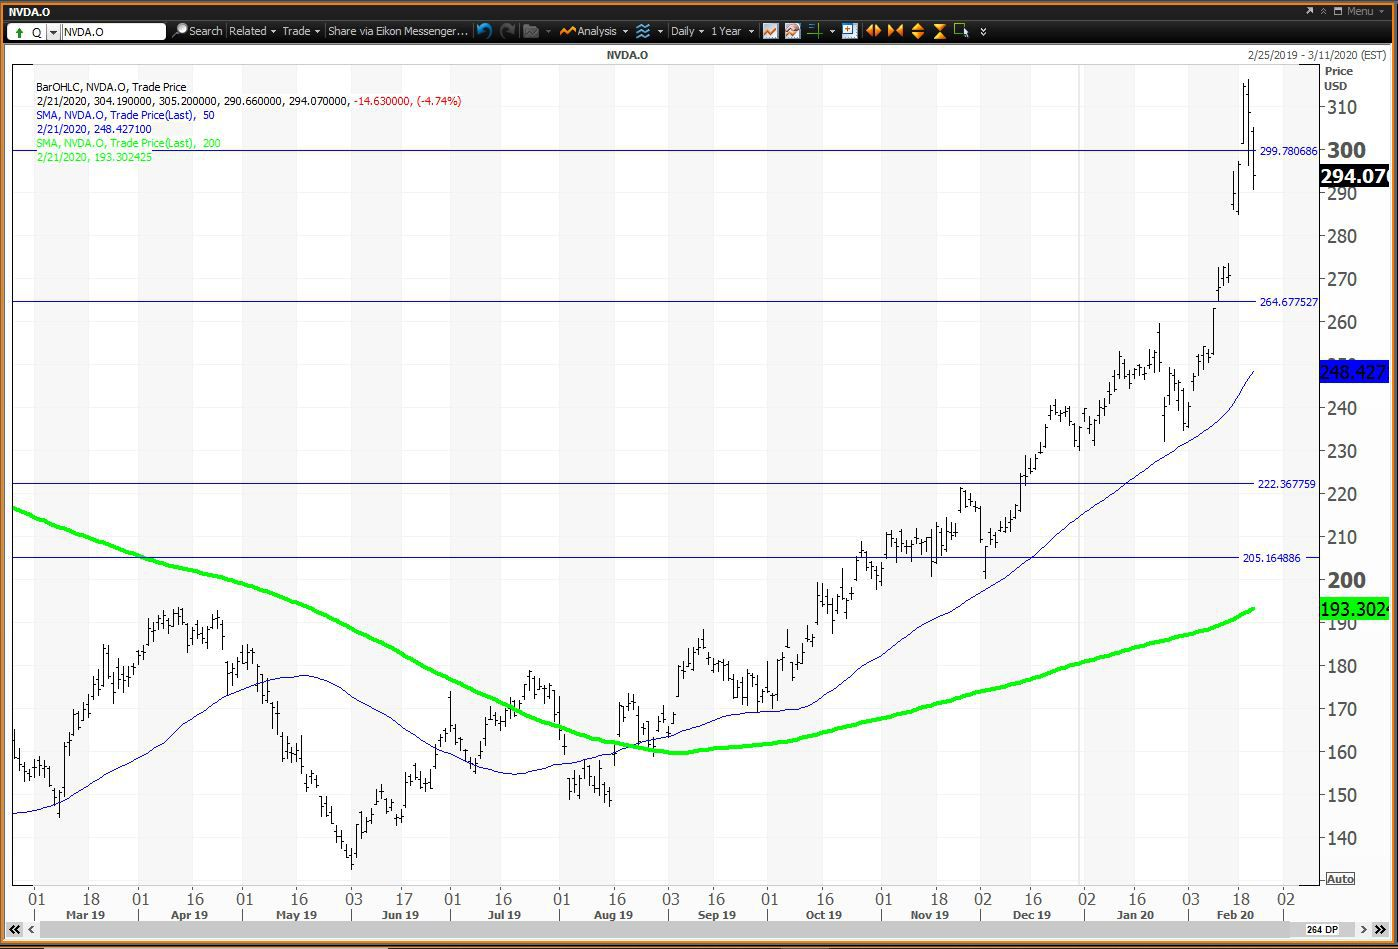 Daily chart showing the share price performance of NVIDIA Corporation (NVDA)